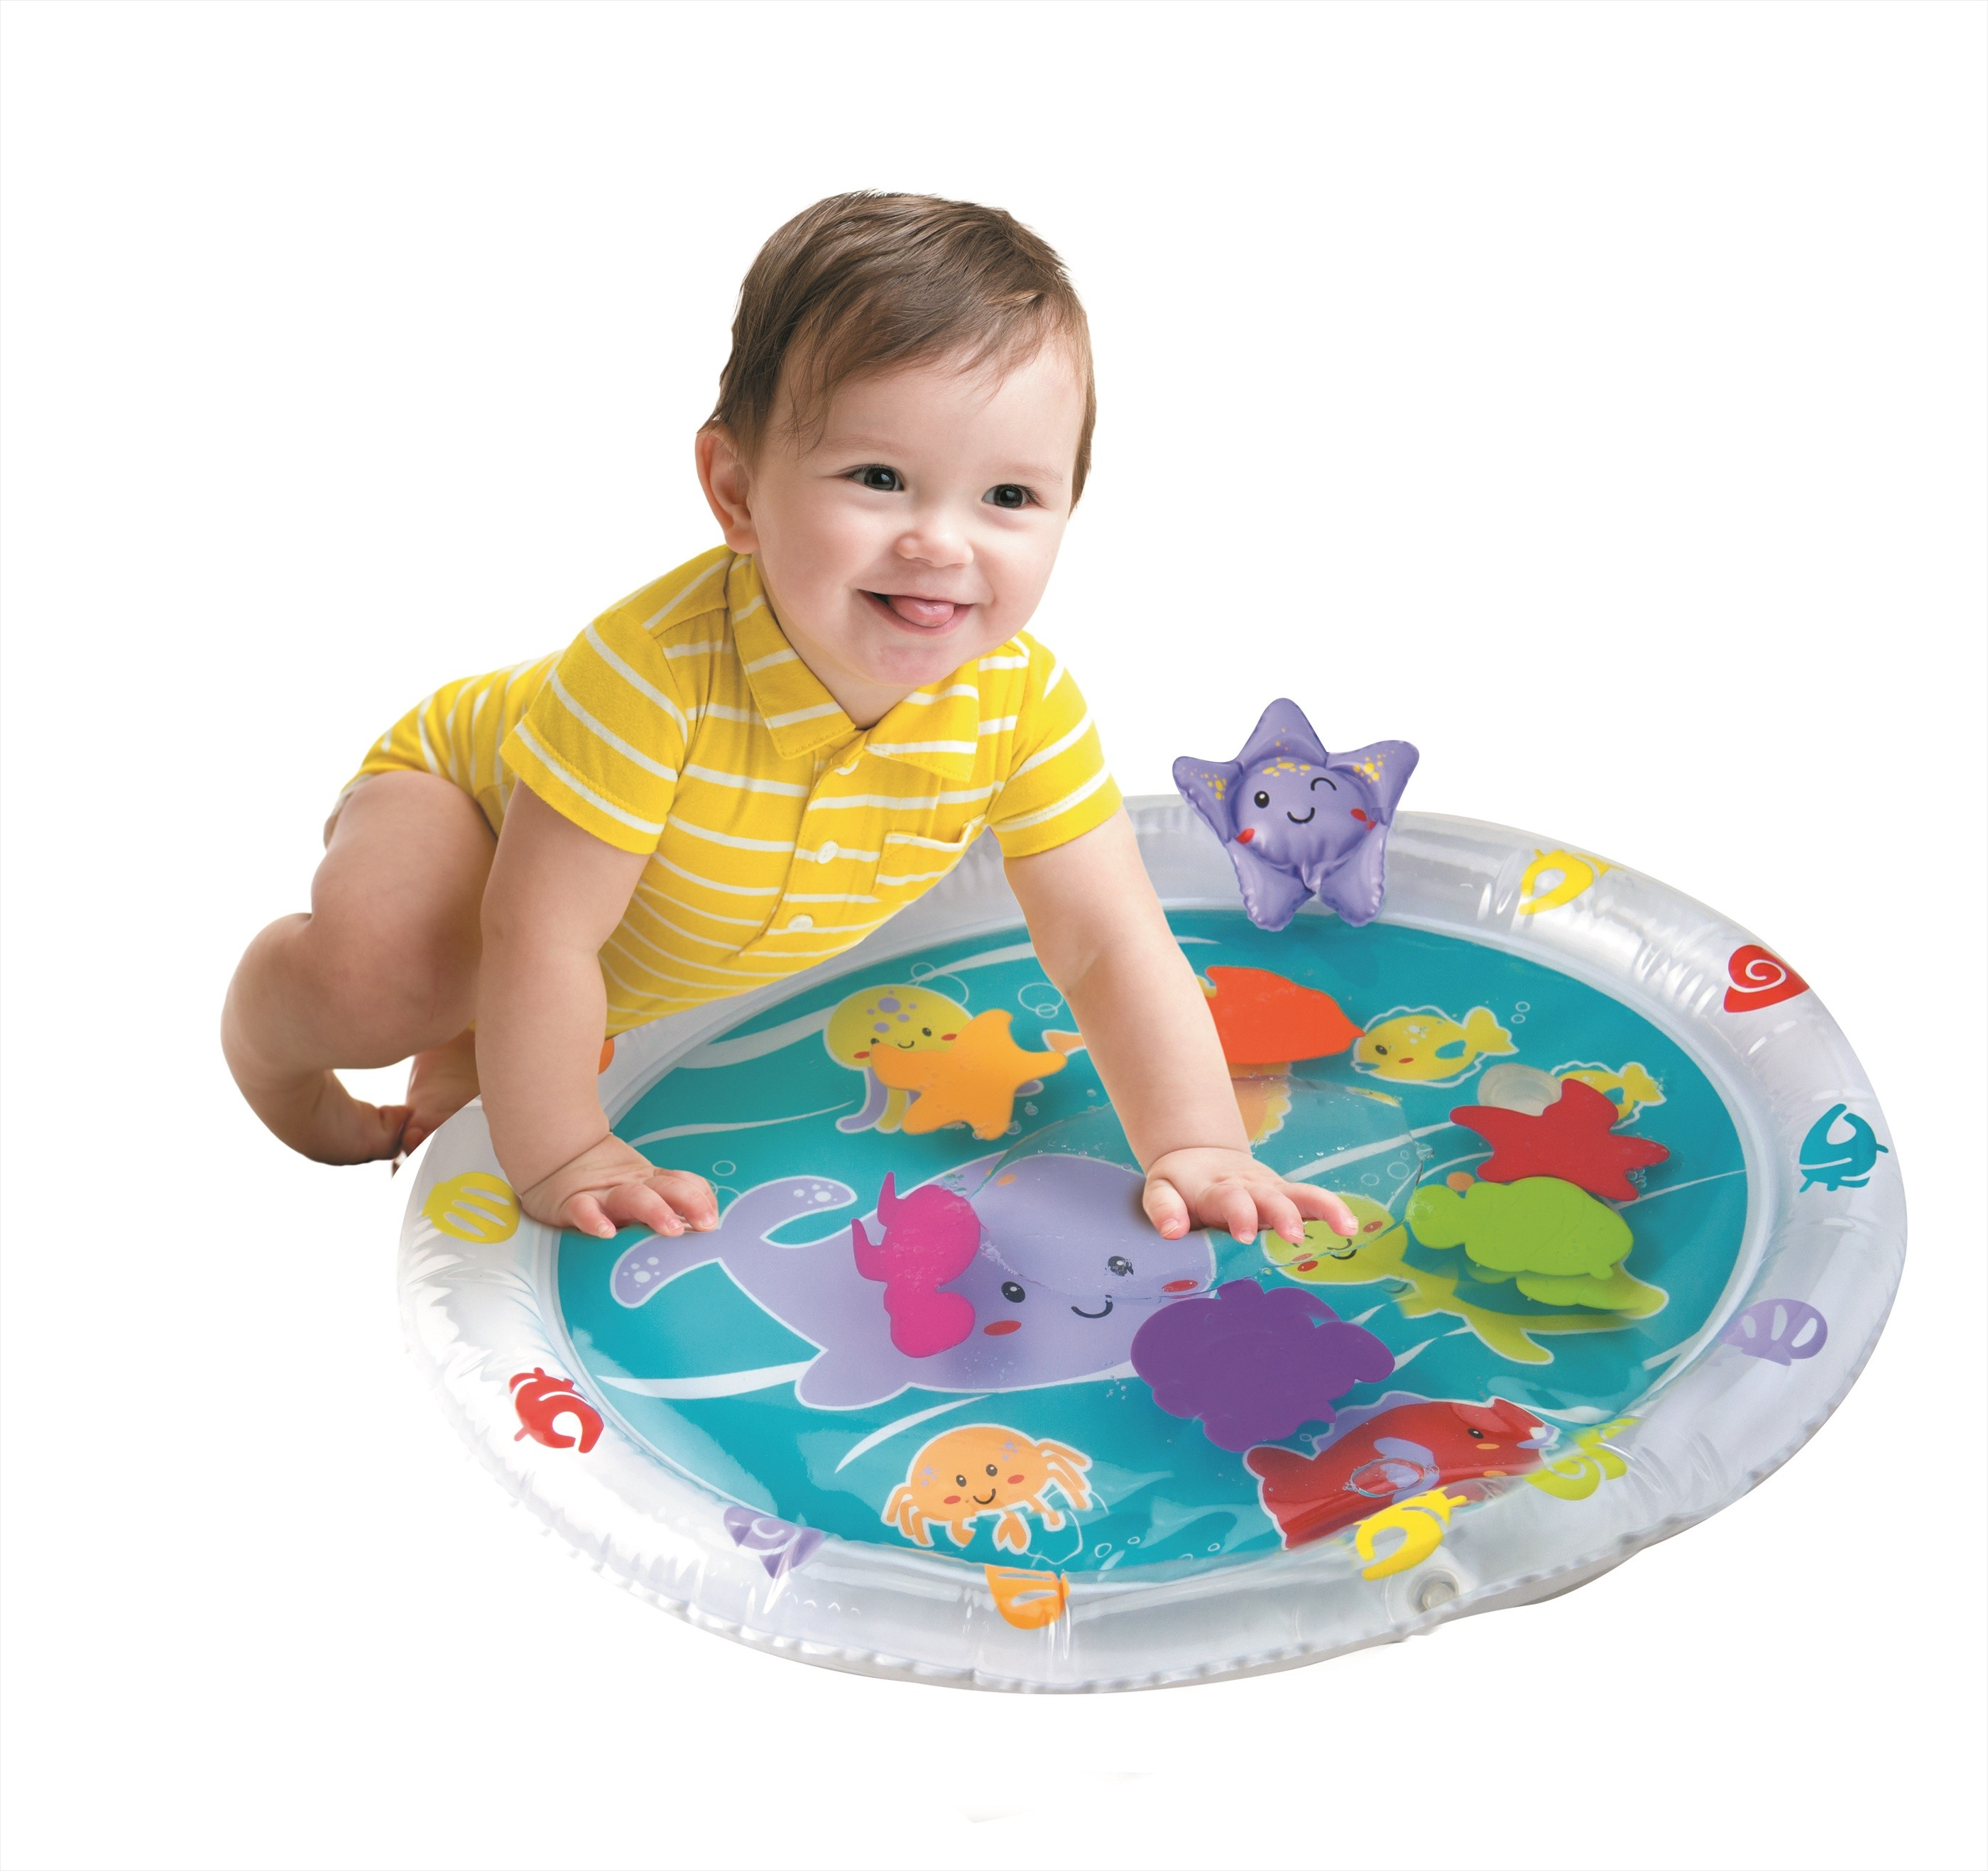 baby multi playgym image mat snail told little softly bird cut activity play out mats main me shop